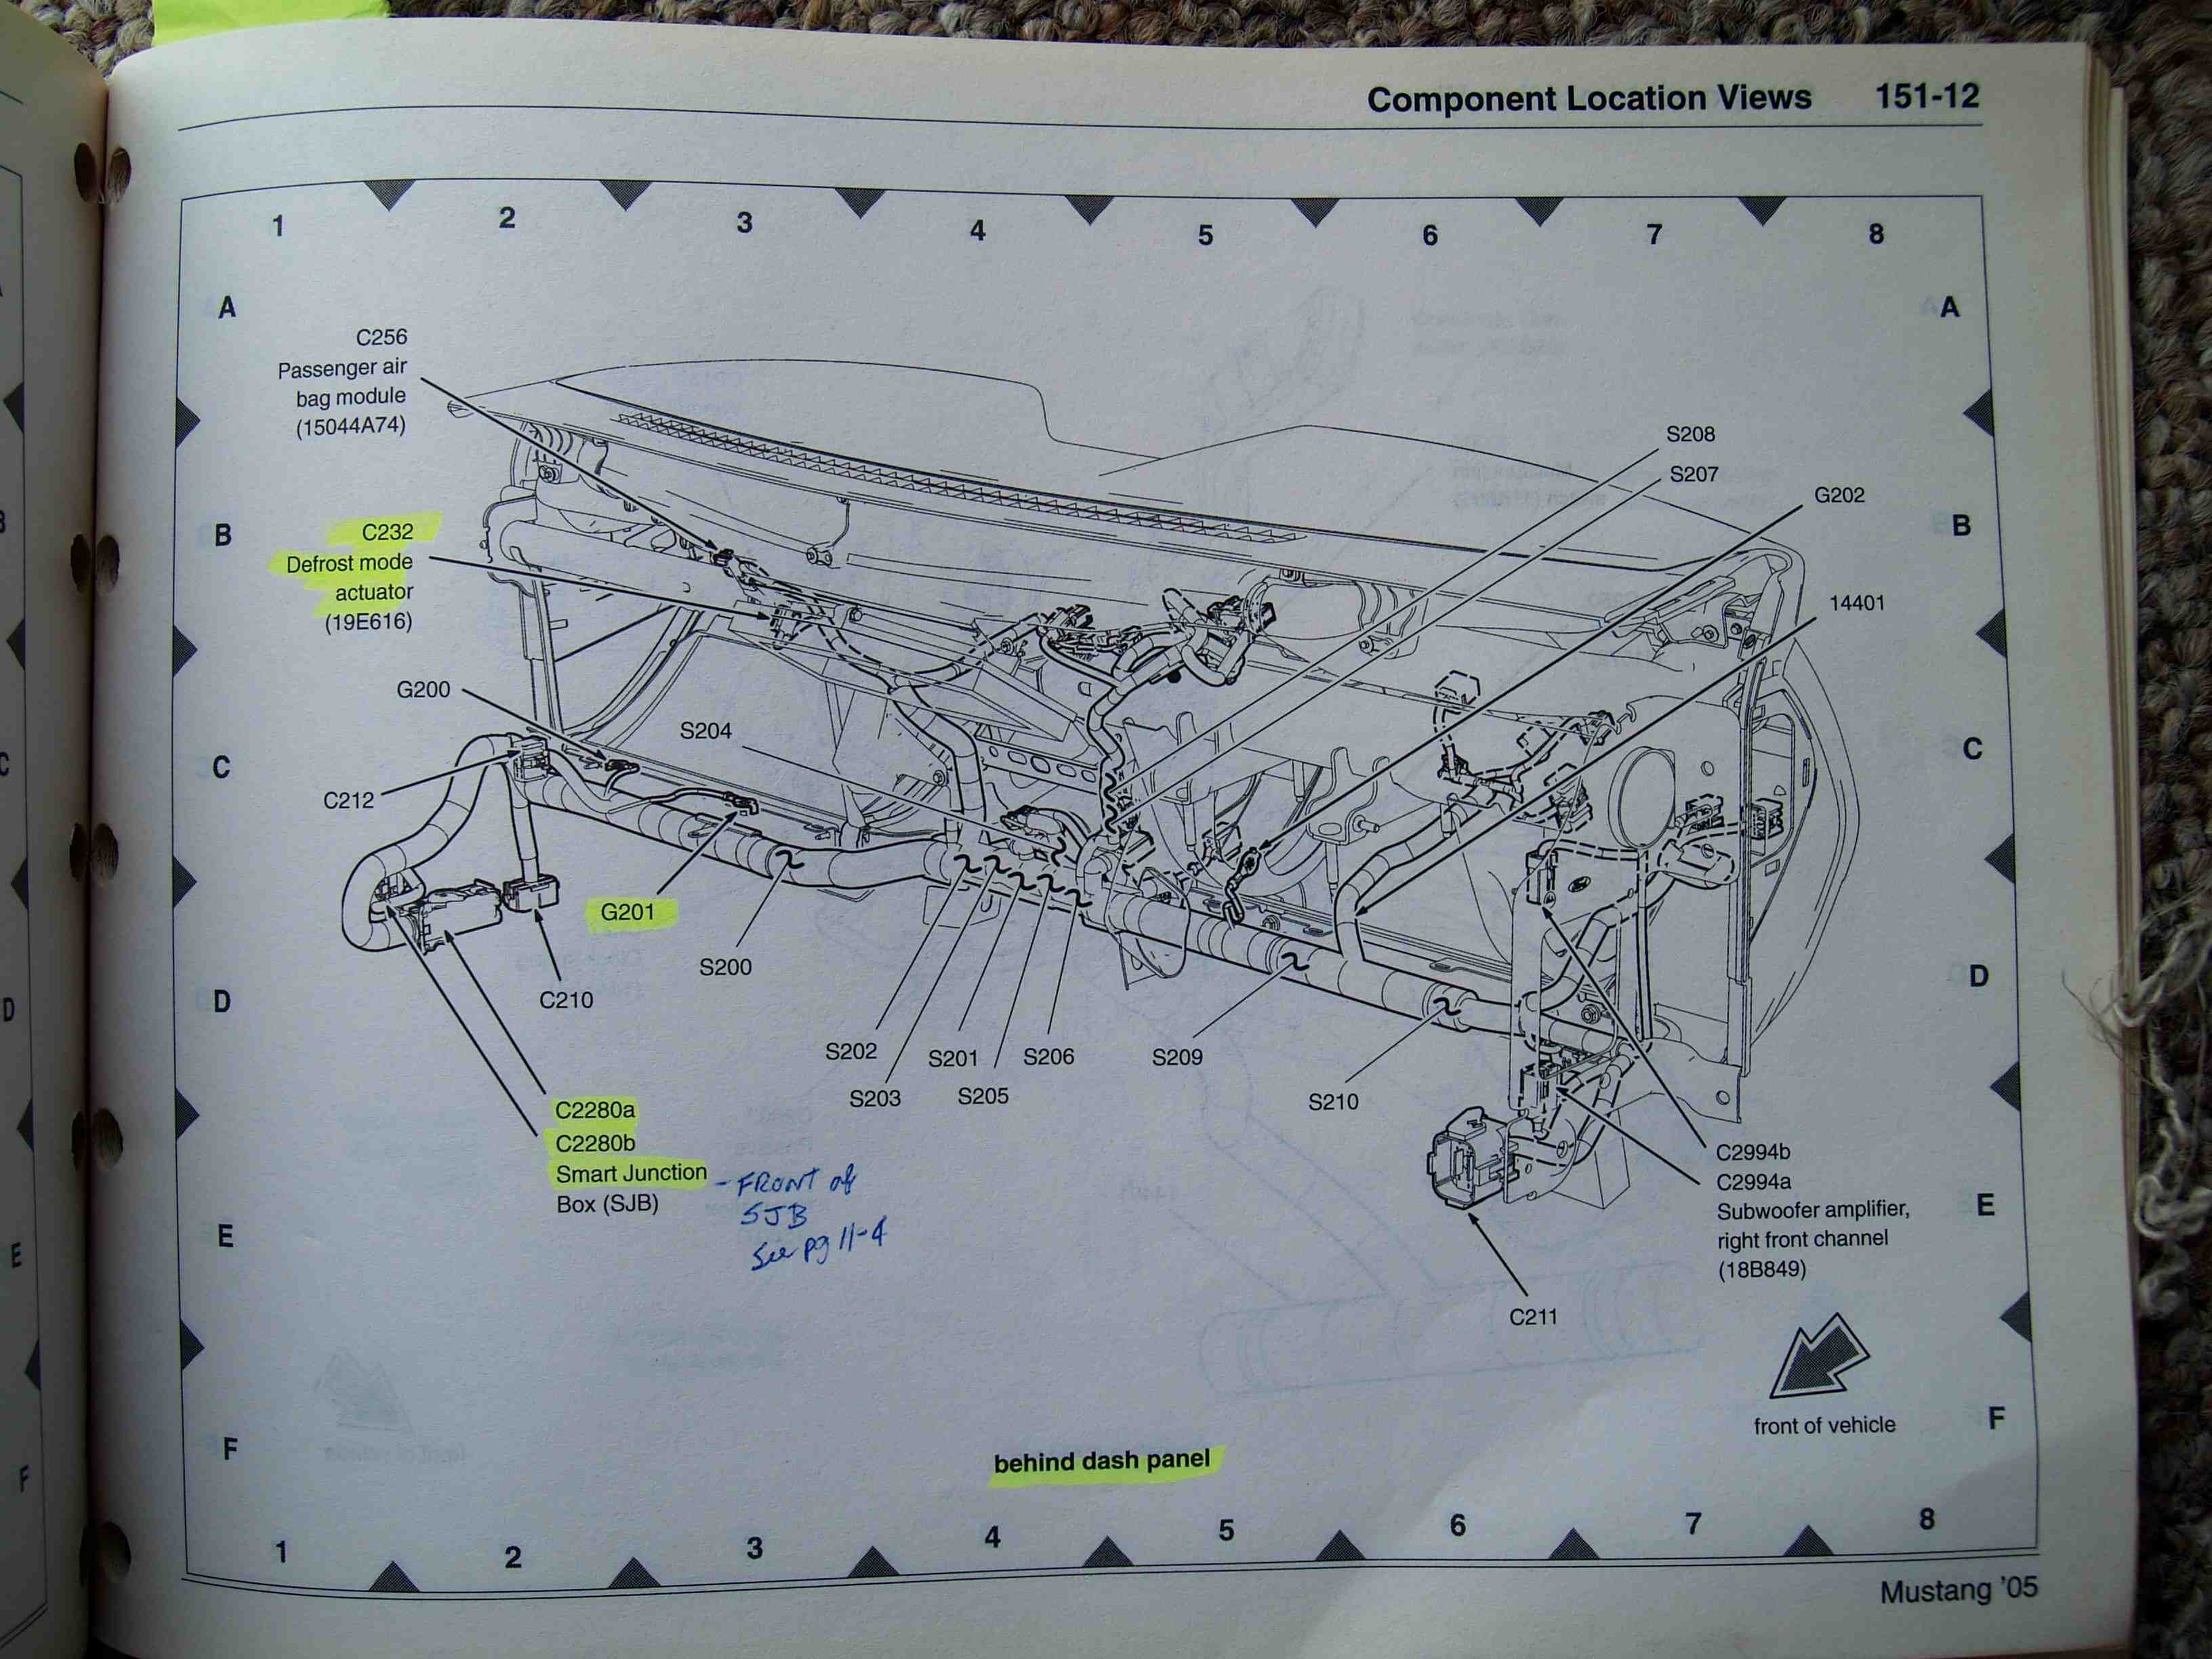 2008 GT Headlight Wiring Diagram?-p5206406-4.jpg